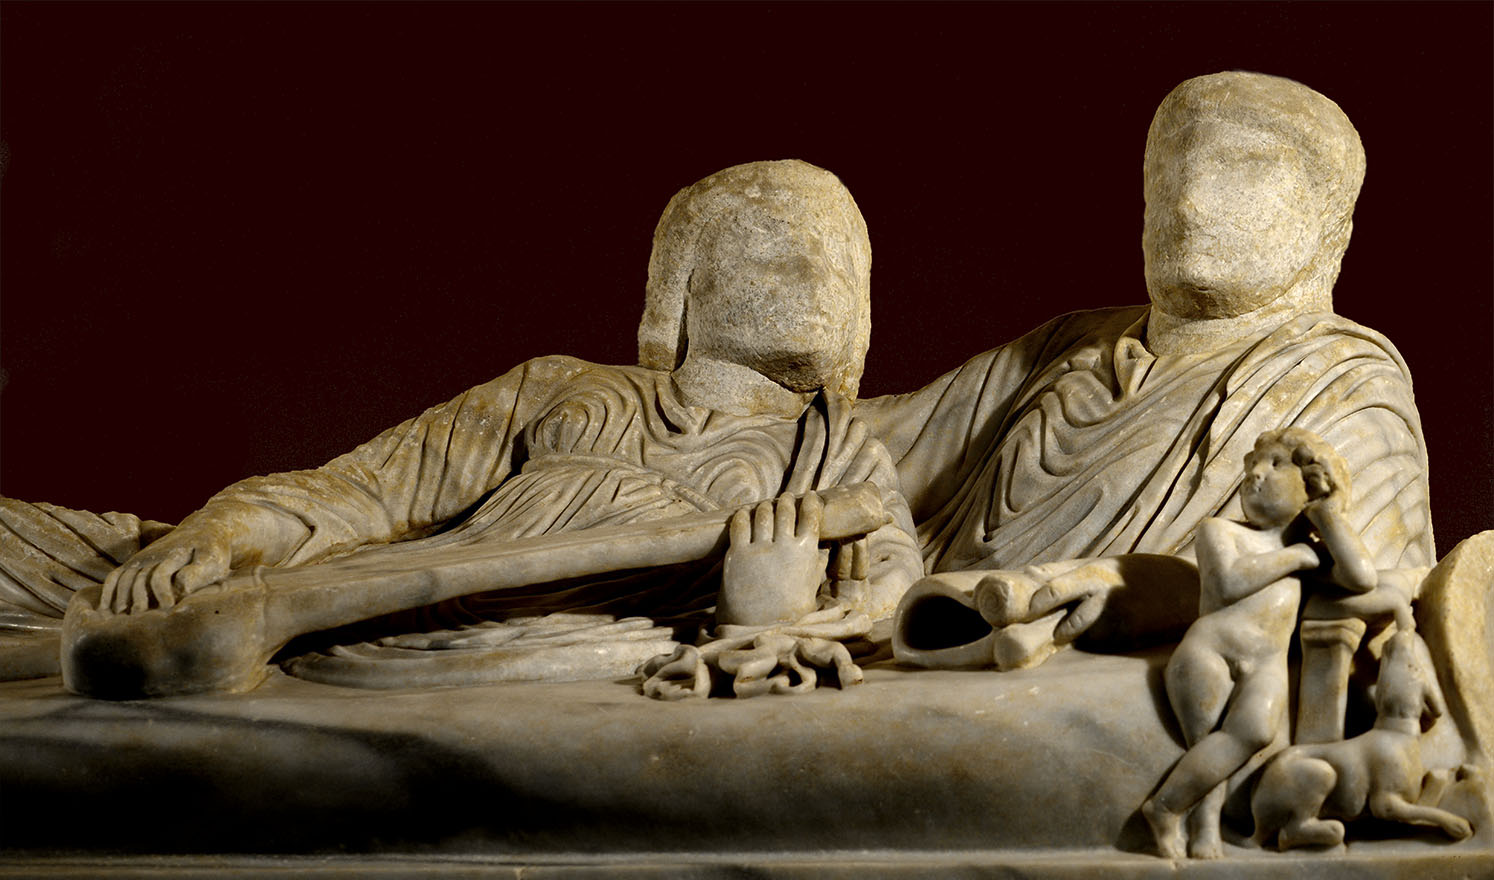 Sarcophagus with a scene of the Calydonian Hunt. The sarcophagus lid with full-length sculptural portraits of the deceased reclining on a kline (kline lid). Proconnesian marble. Mid-3rd cent. CE. Inv. No. 917. Rome, Capitoline Museums, Palazzo dei Conservatori